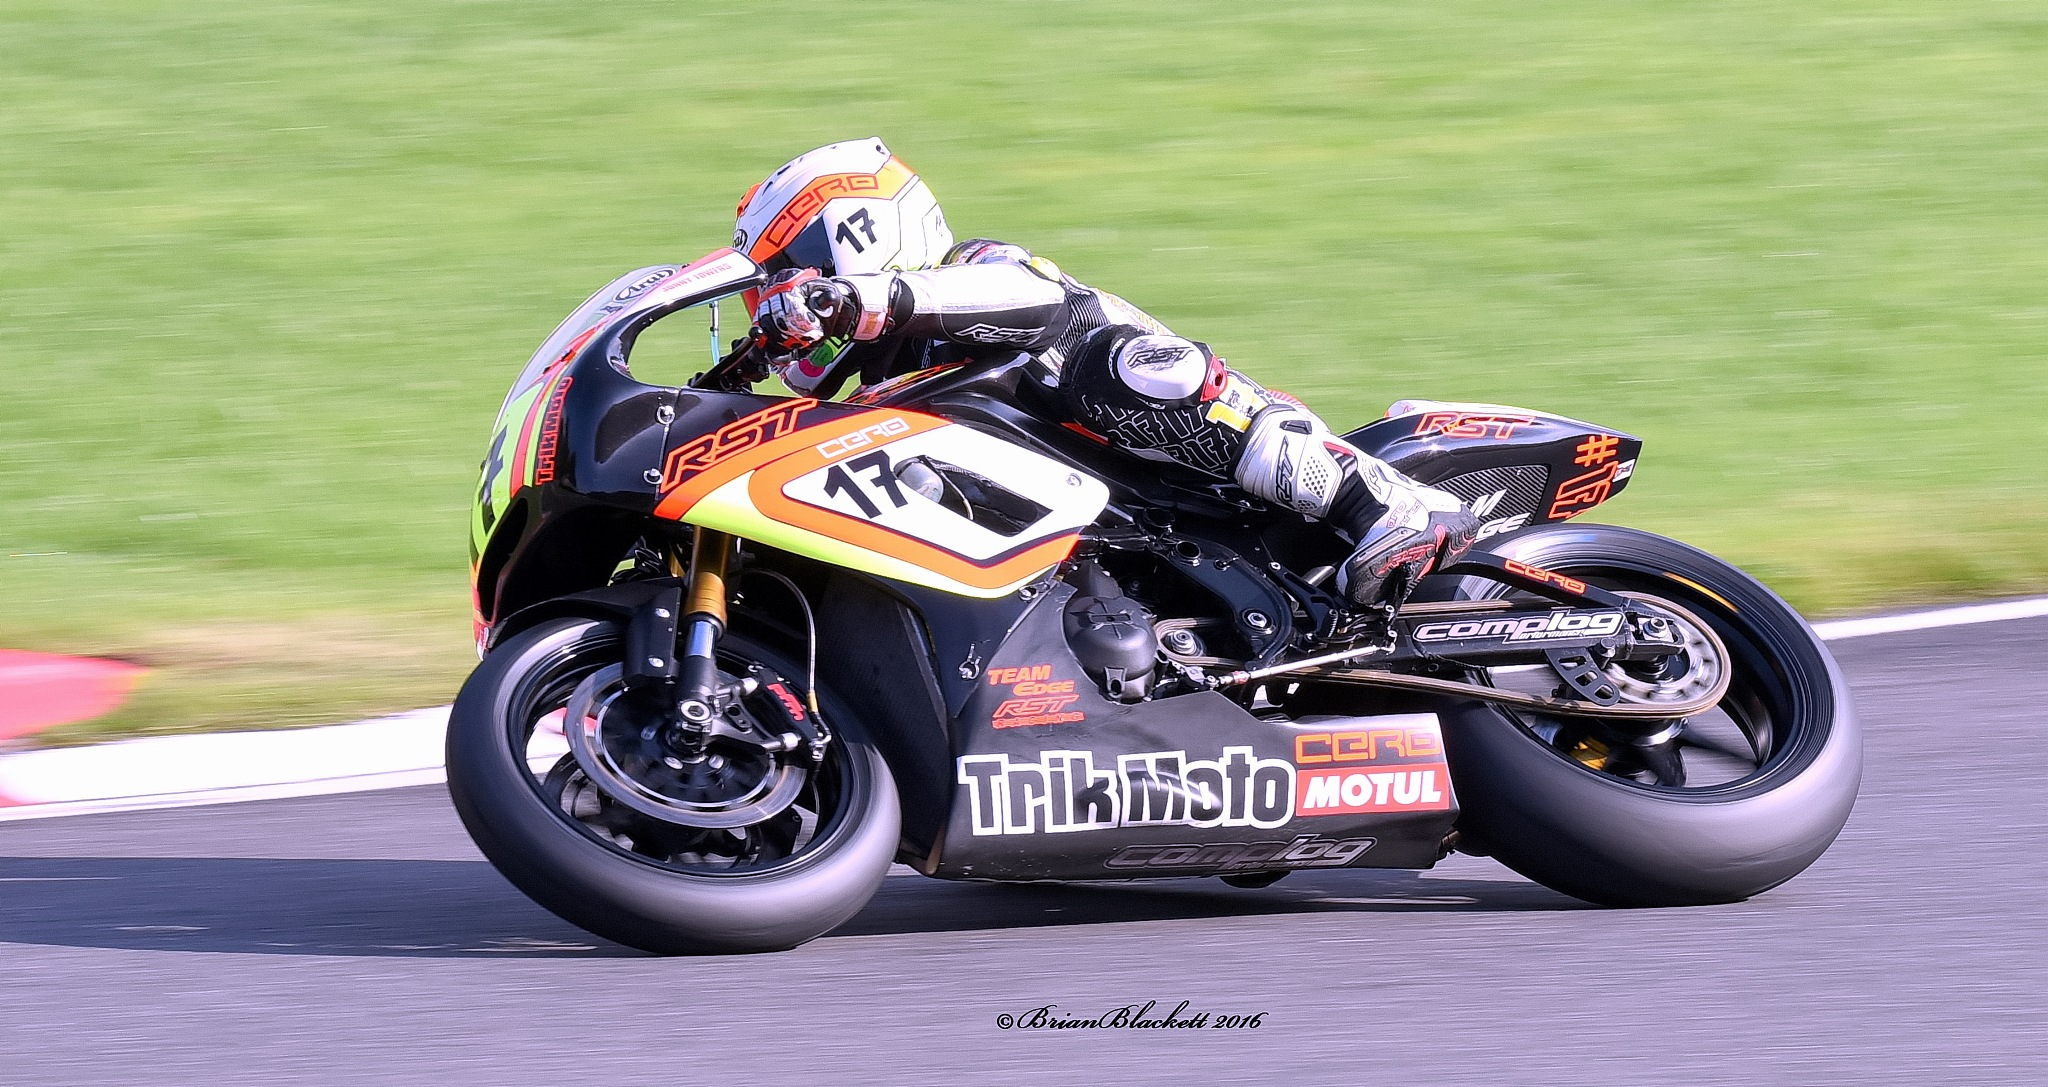 Avon Tyres Supertwins Championships Cadwell Park Lincolnshire 2016 by brianblackett